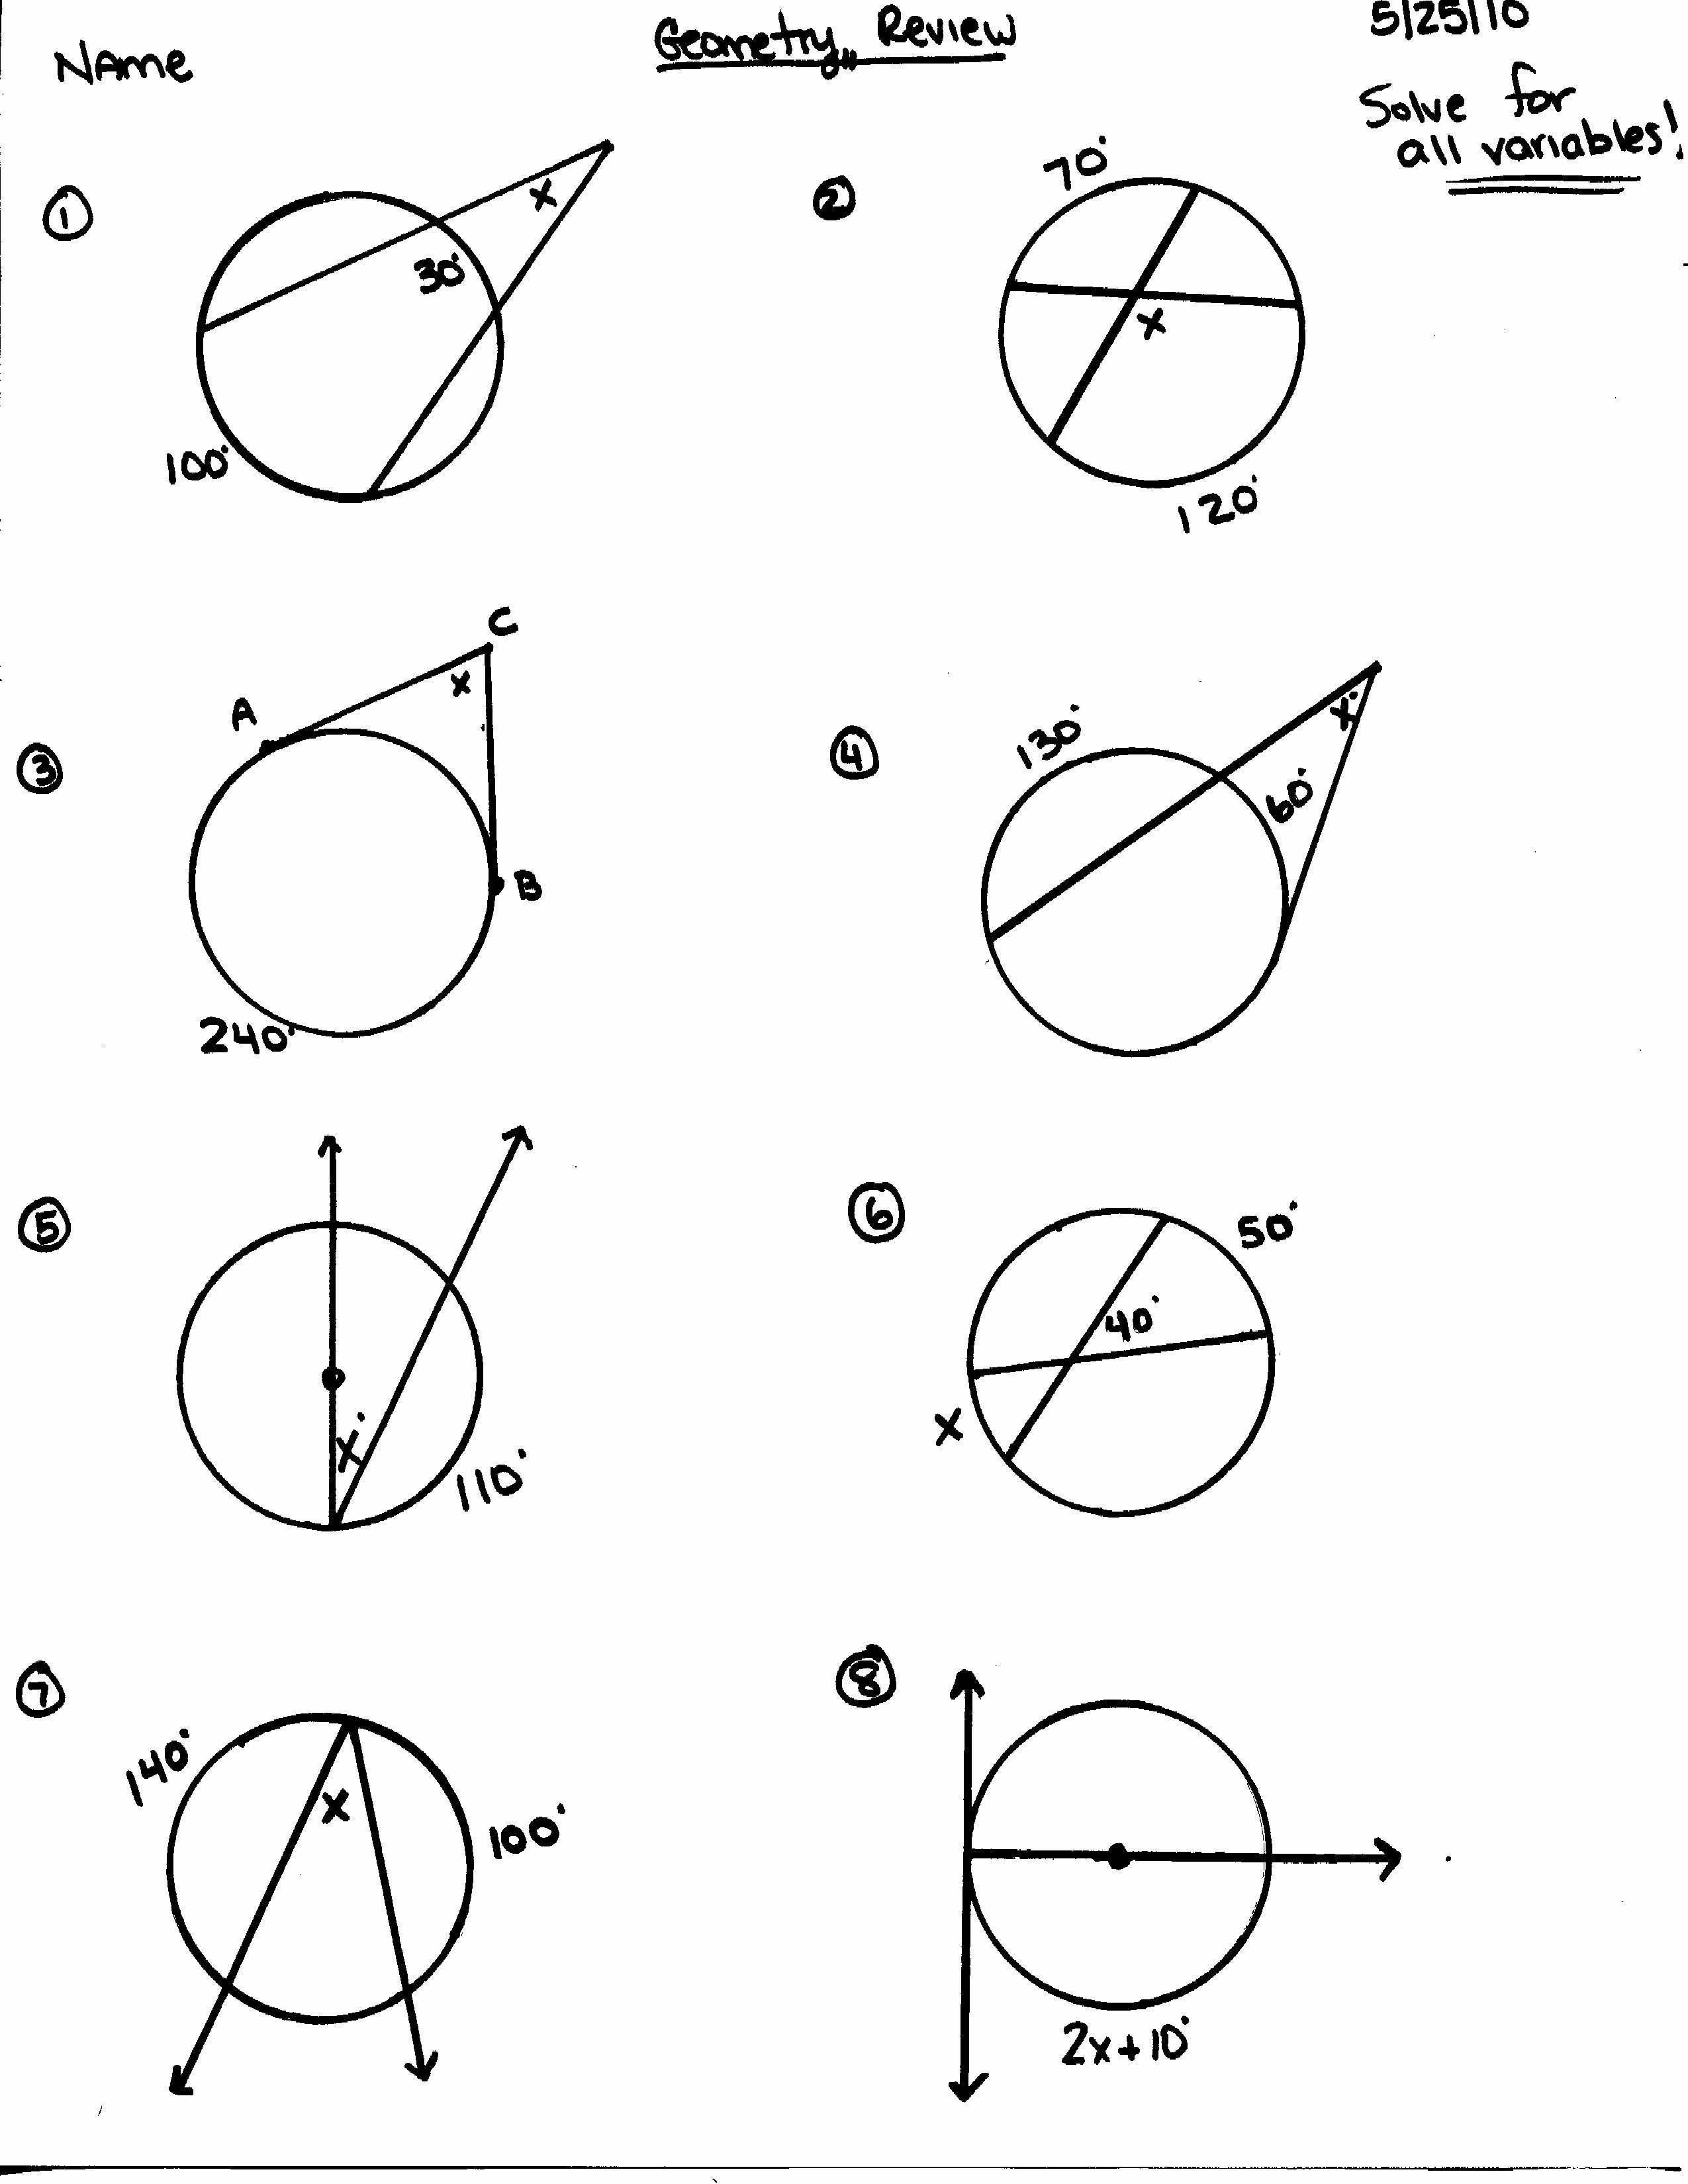 hight resolution of Angles In A Circle Worksheet Lovely Circle theorems Match Up by Debbs  Bridgman – Chessmuseum Template Libra…   Geometry proofs